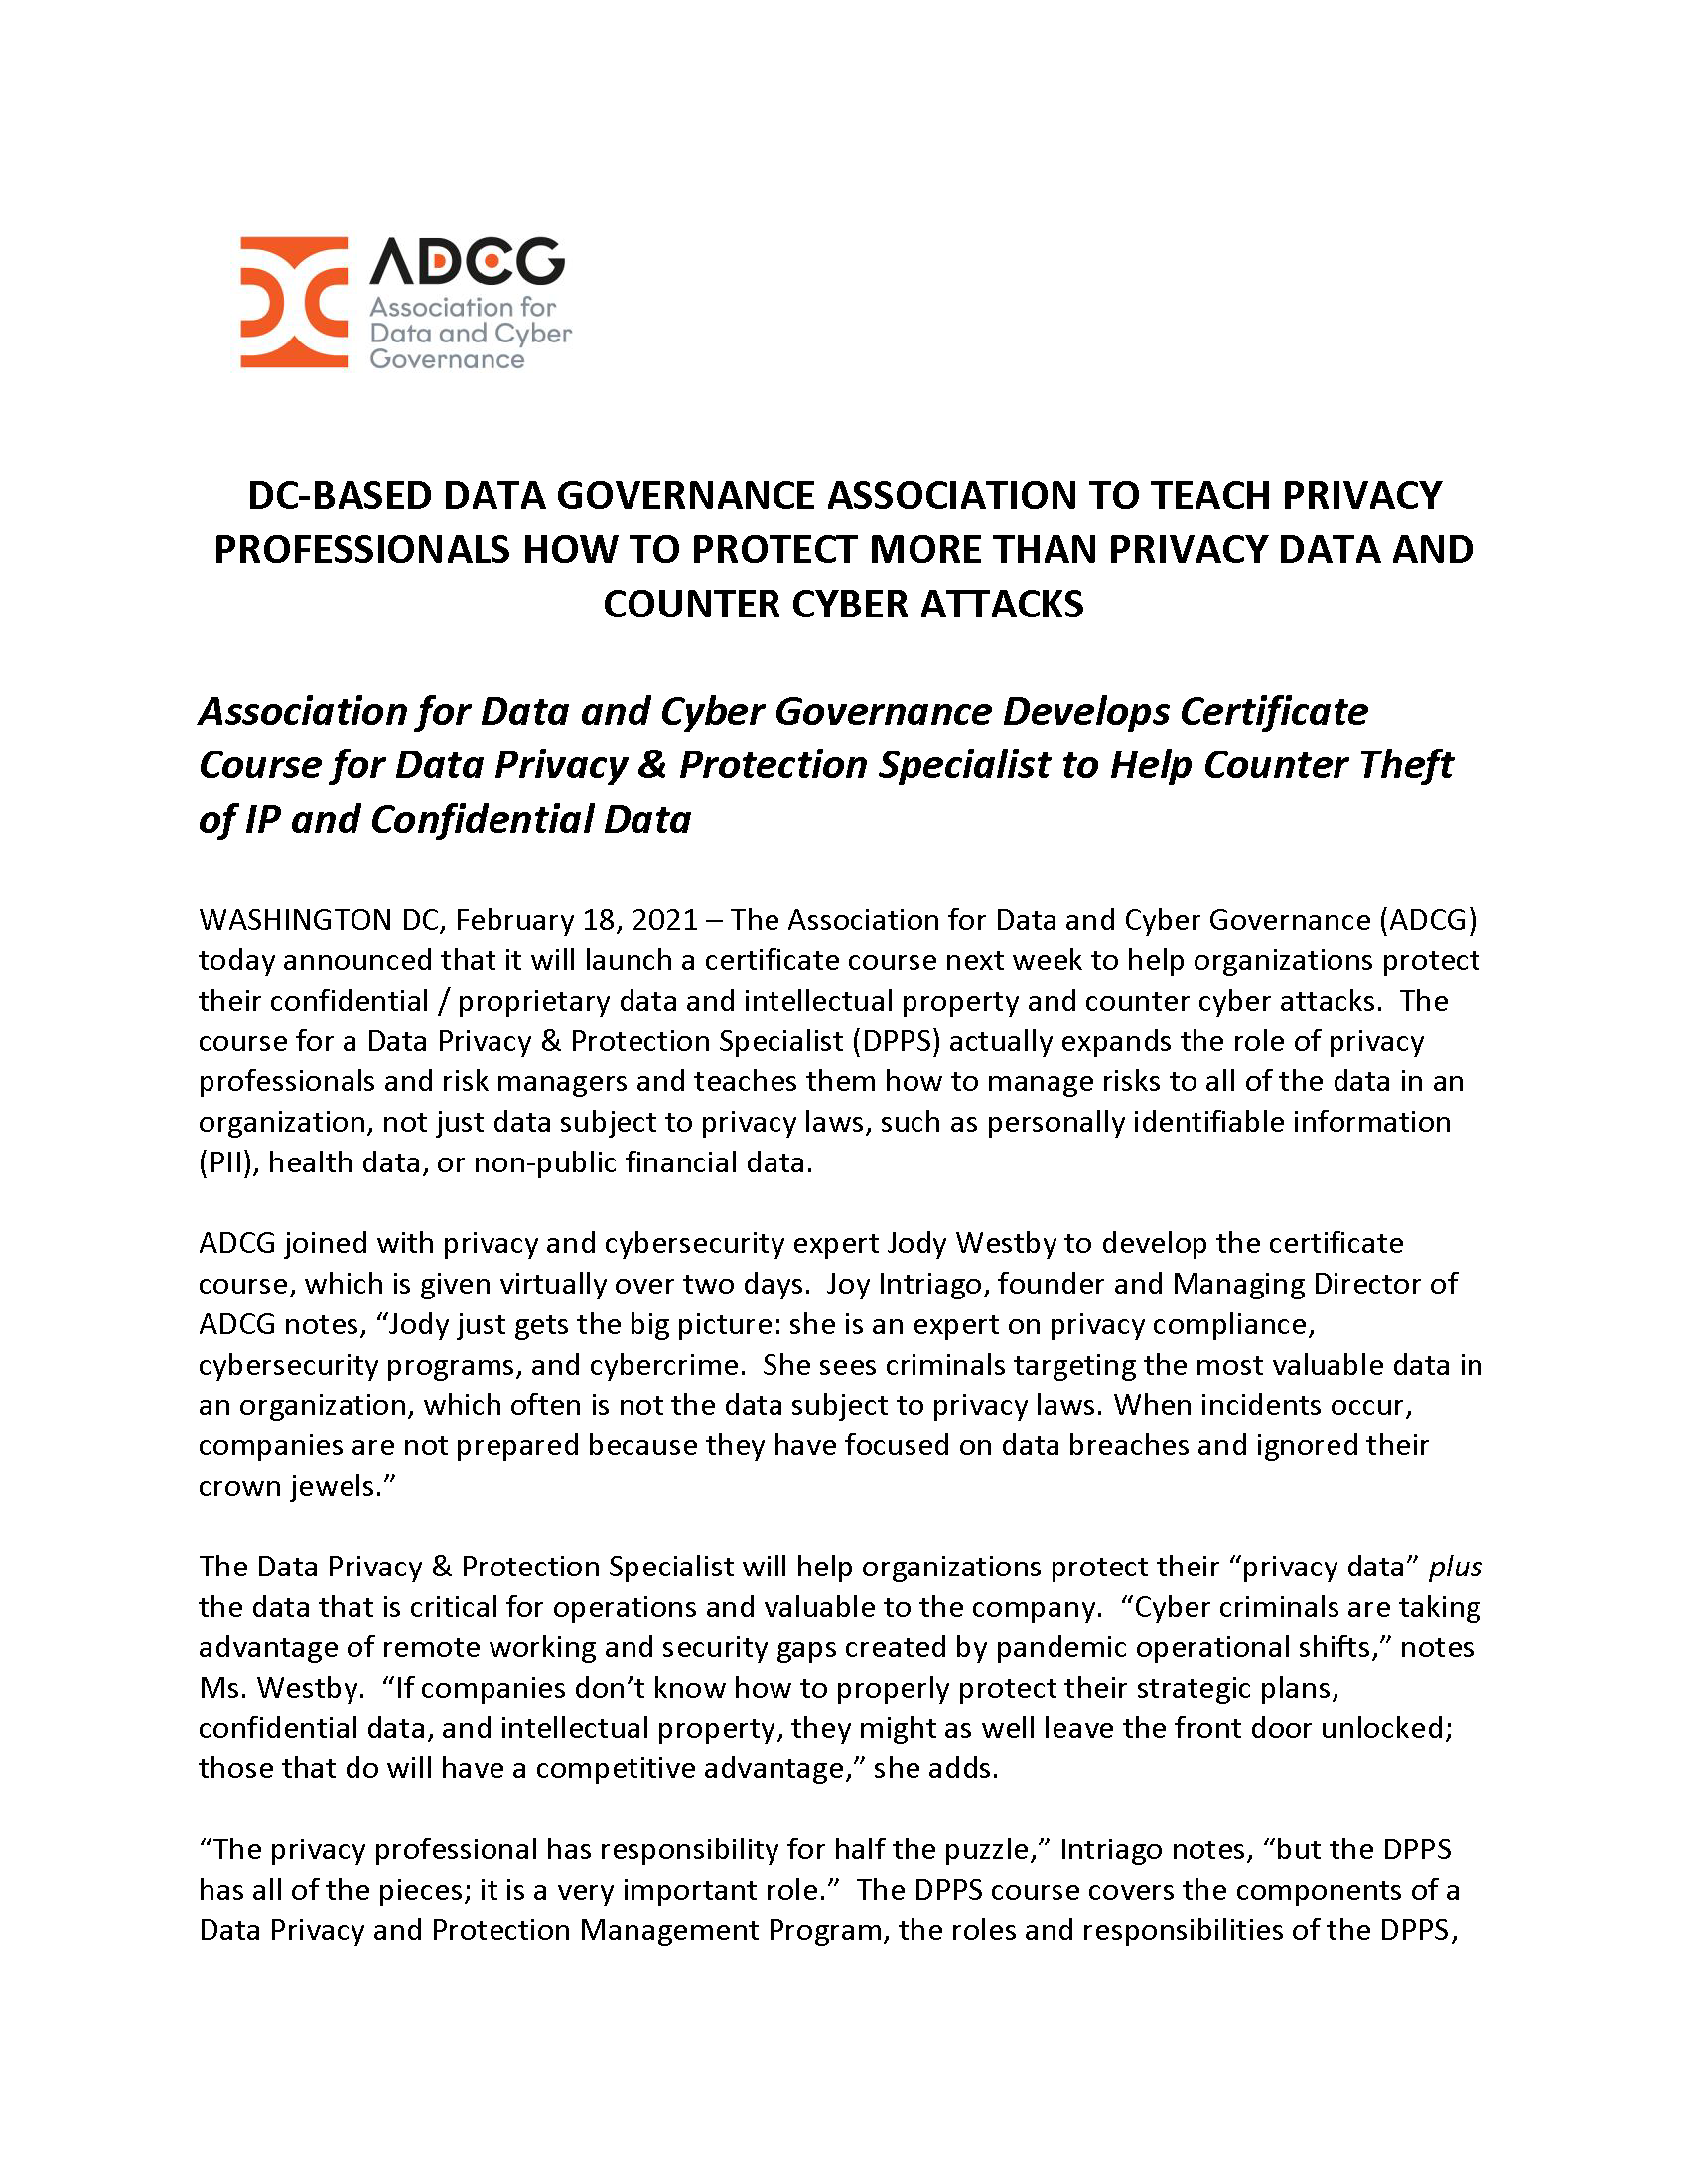 DC-BASED DATA GOVERNANCE ASSOCIATION TO TEACH PRIVACY PROFESSIONALS HOW TO PROTECT MORE THAN PRIVACY DATA AND COUNTER CYBER ATTACKS